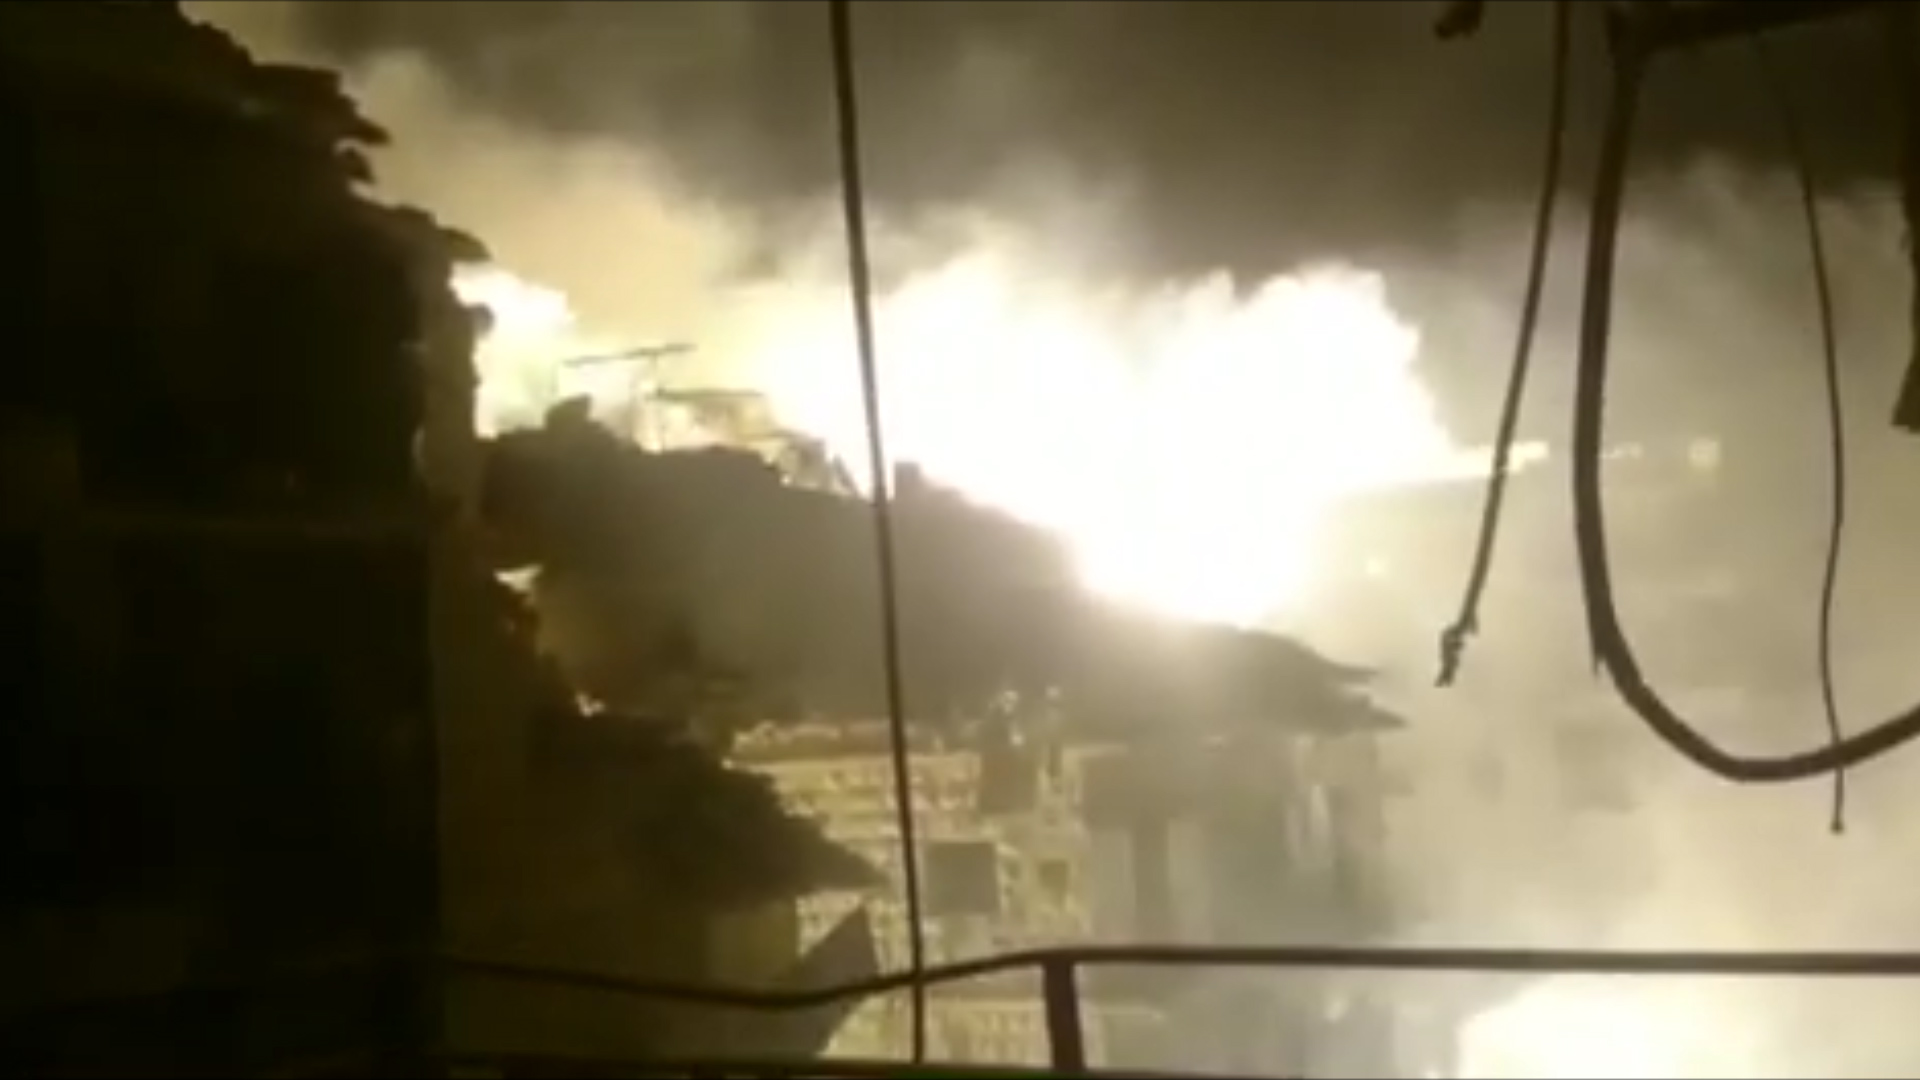 Syrian airstrikes hammer Aleppo amid expanding offensive against rebels